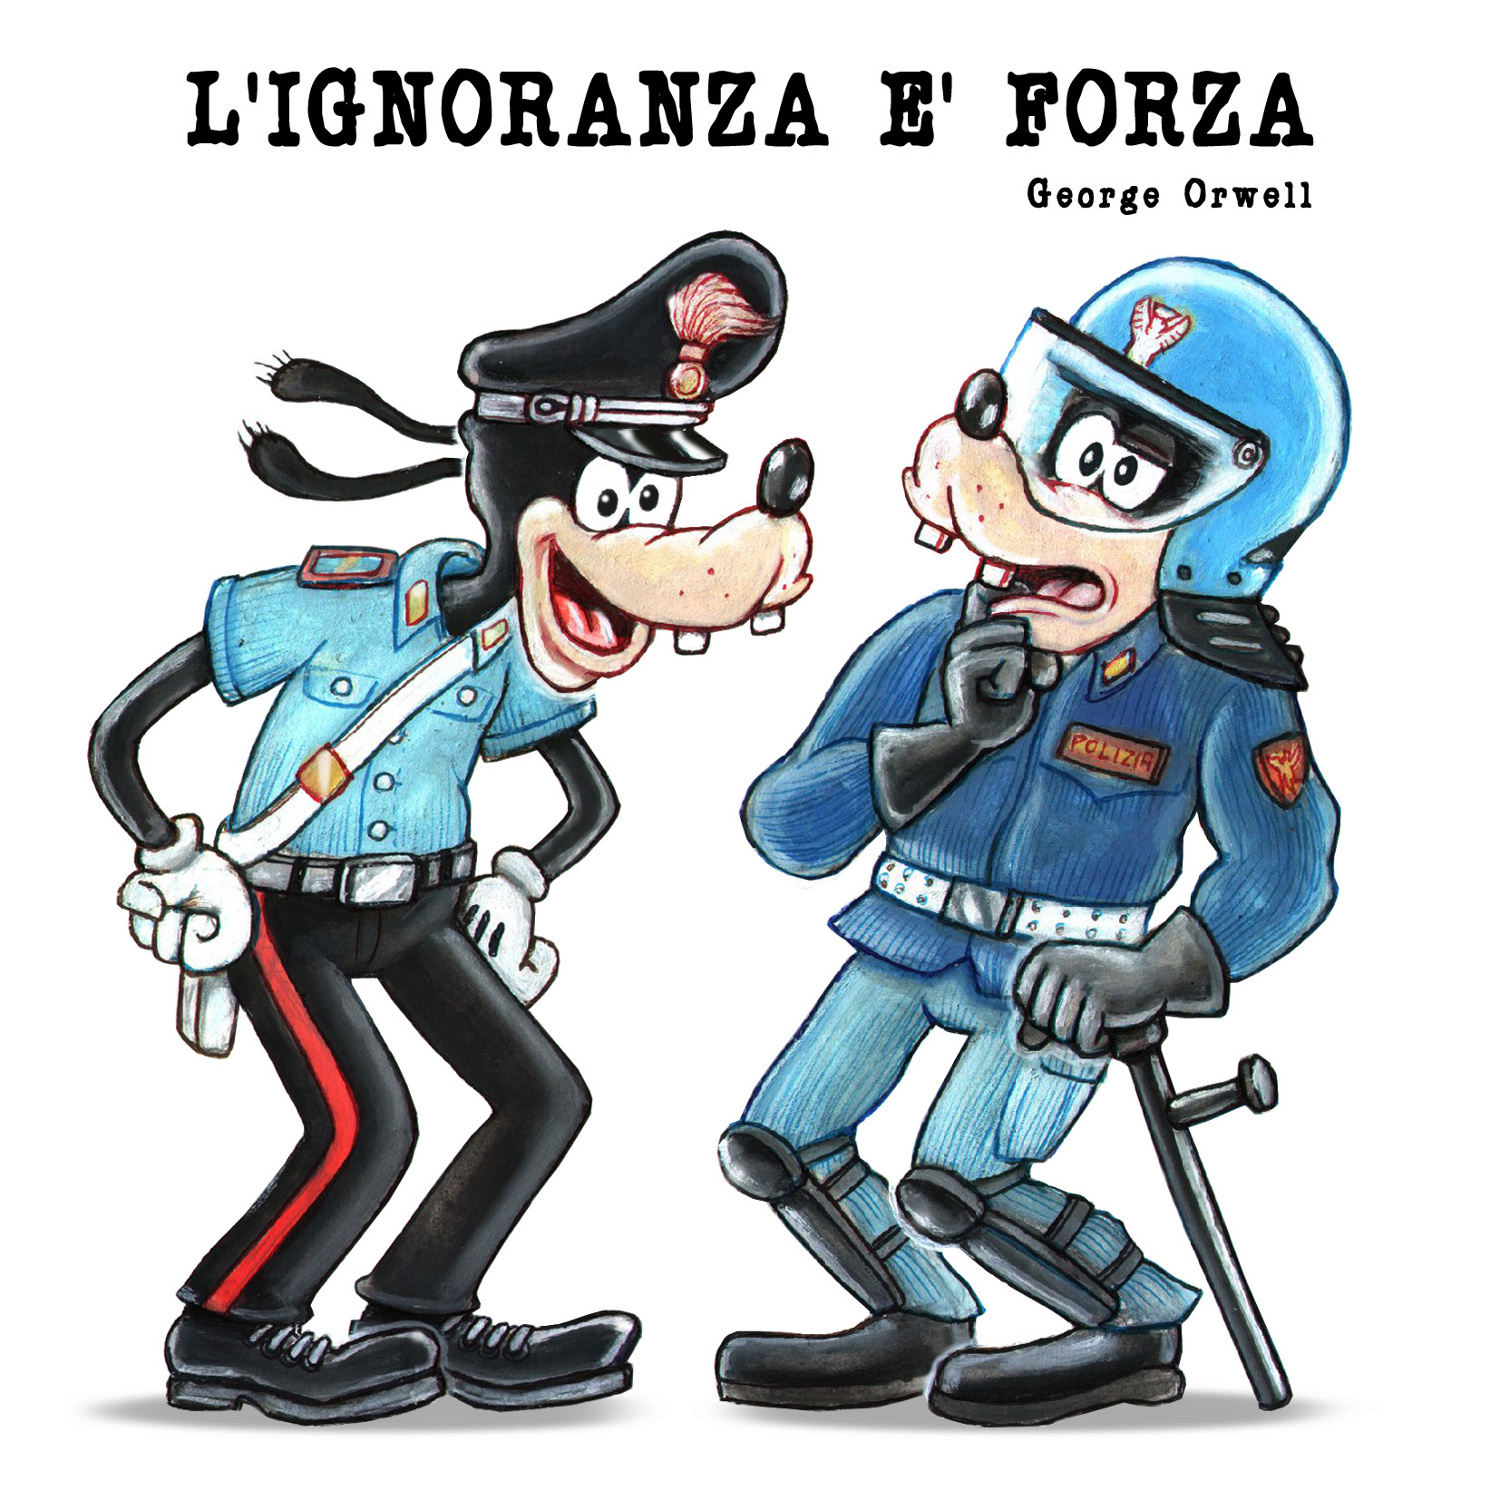 pippolizia-graficanera-no-copyright